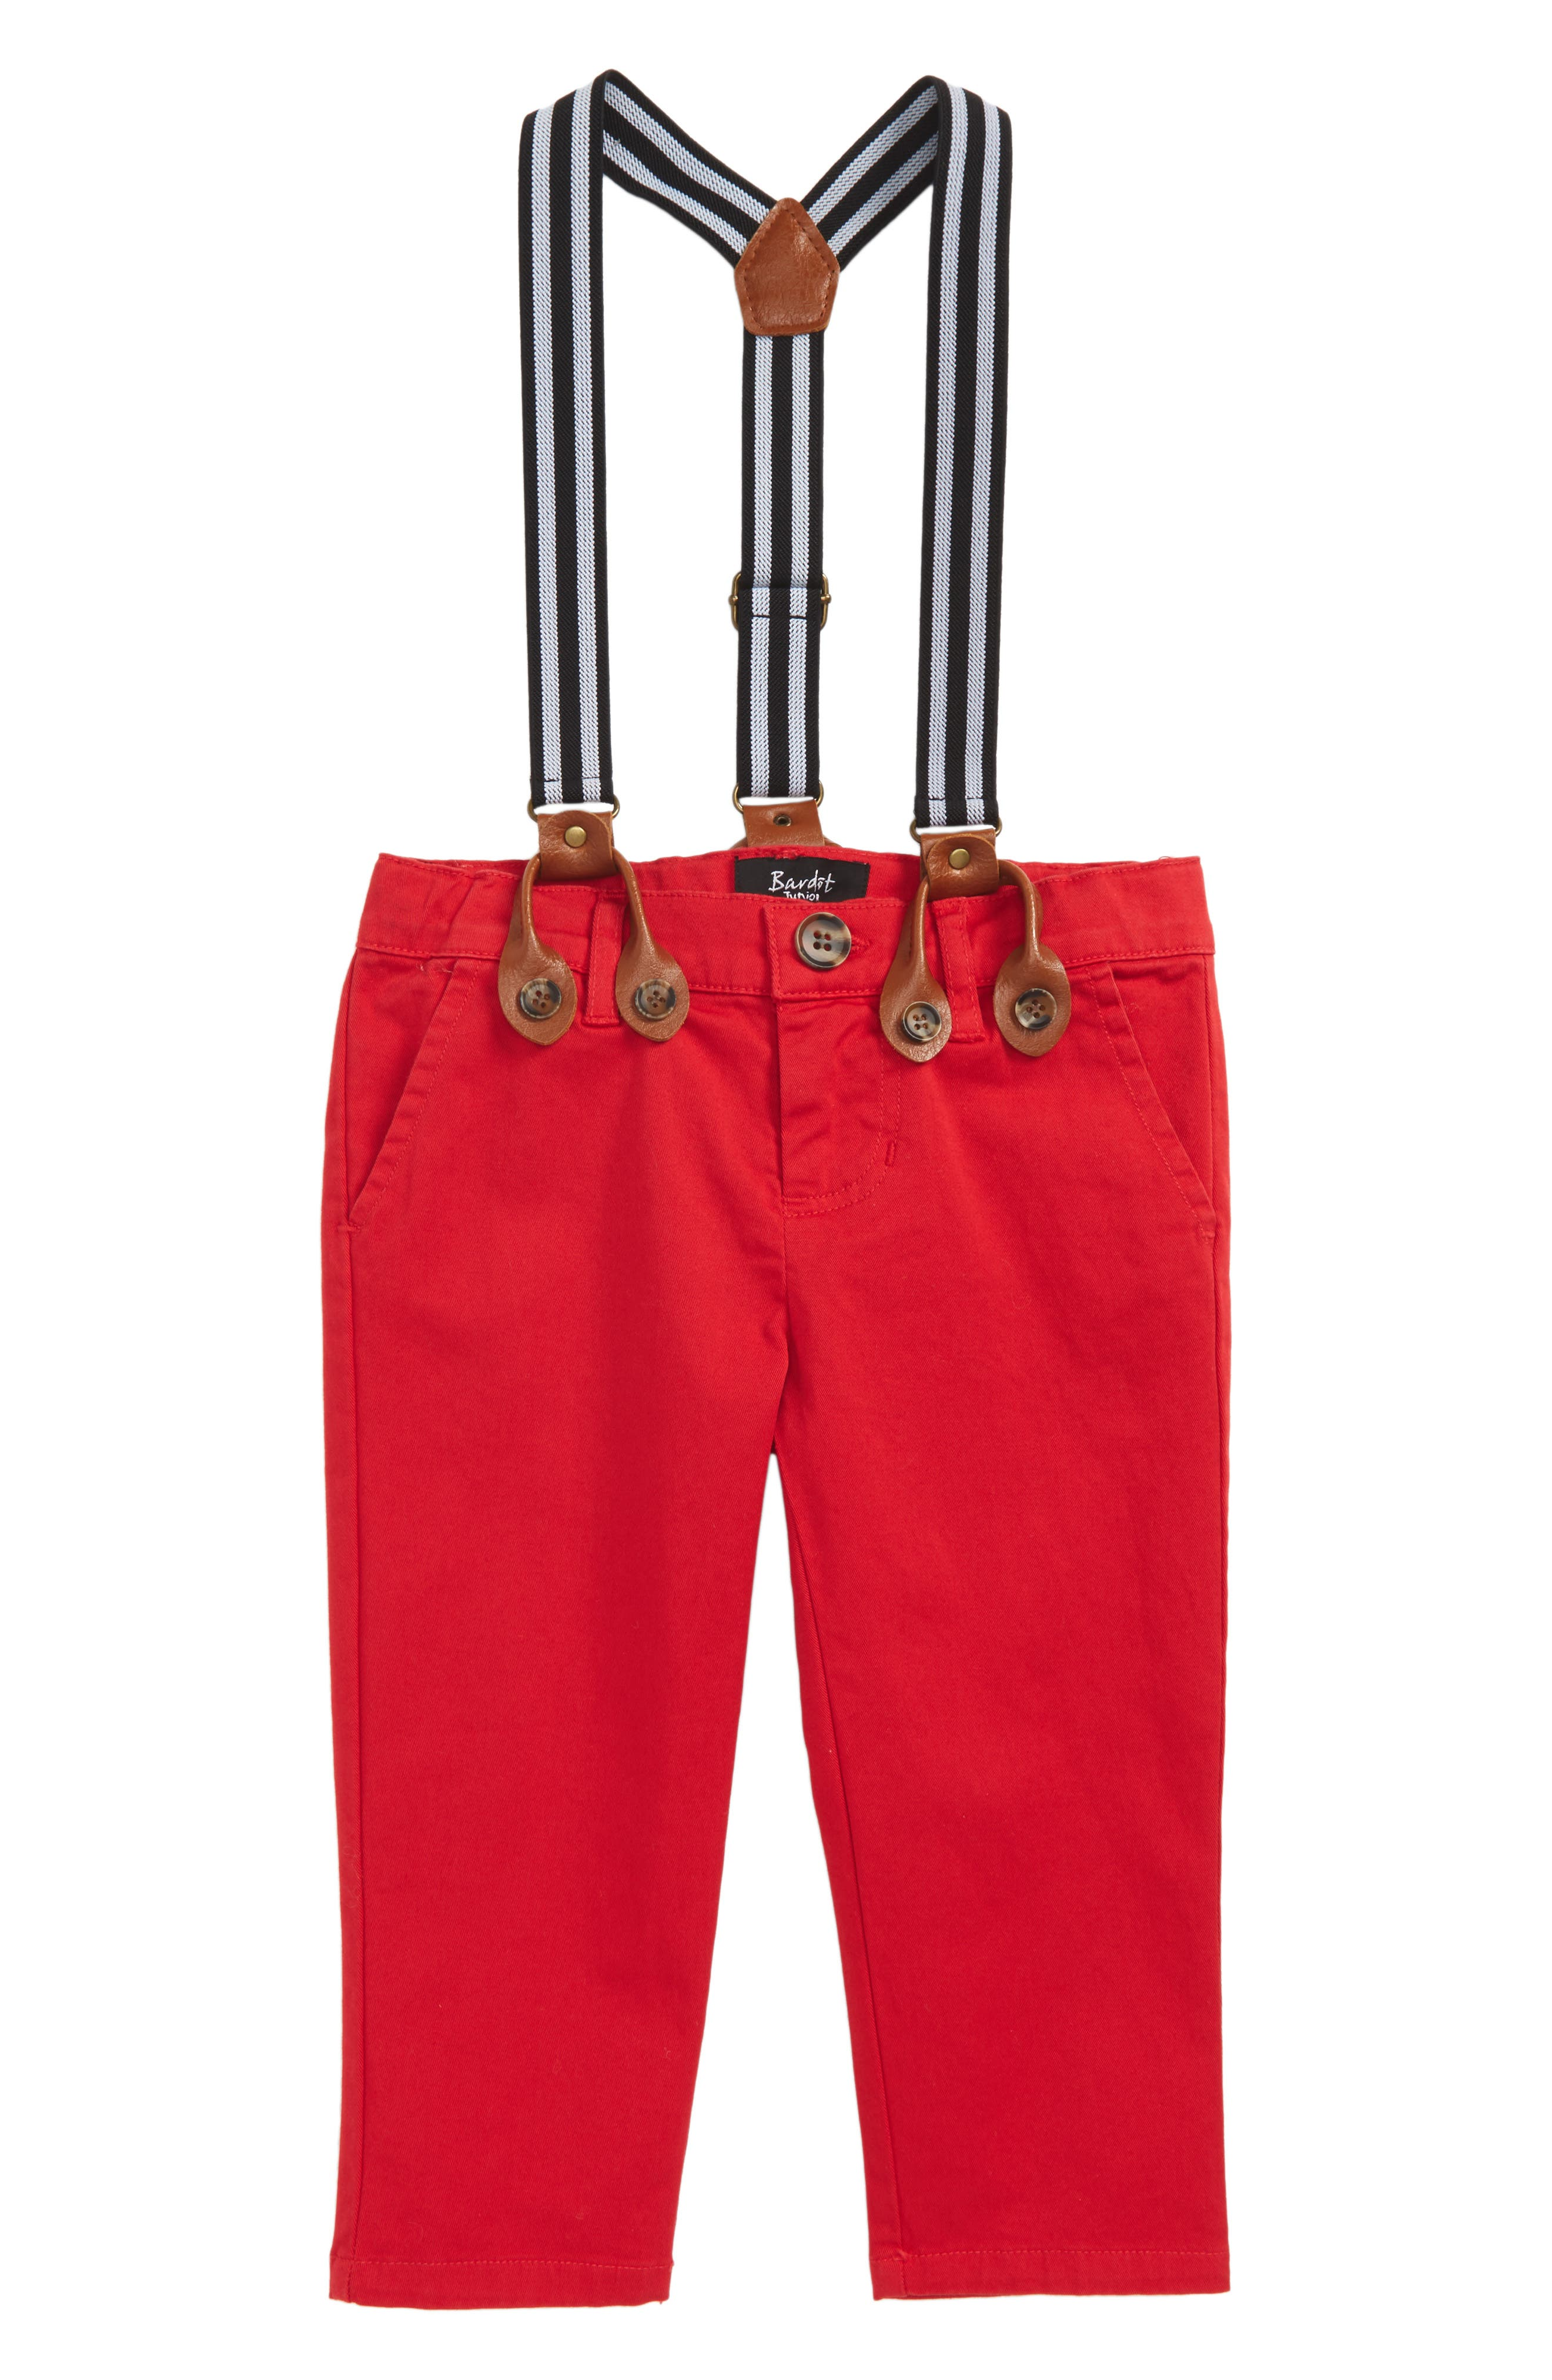 Chinos & Suspenders Set,                         Main,                         color, Red